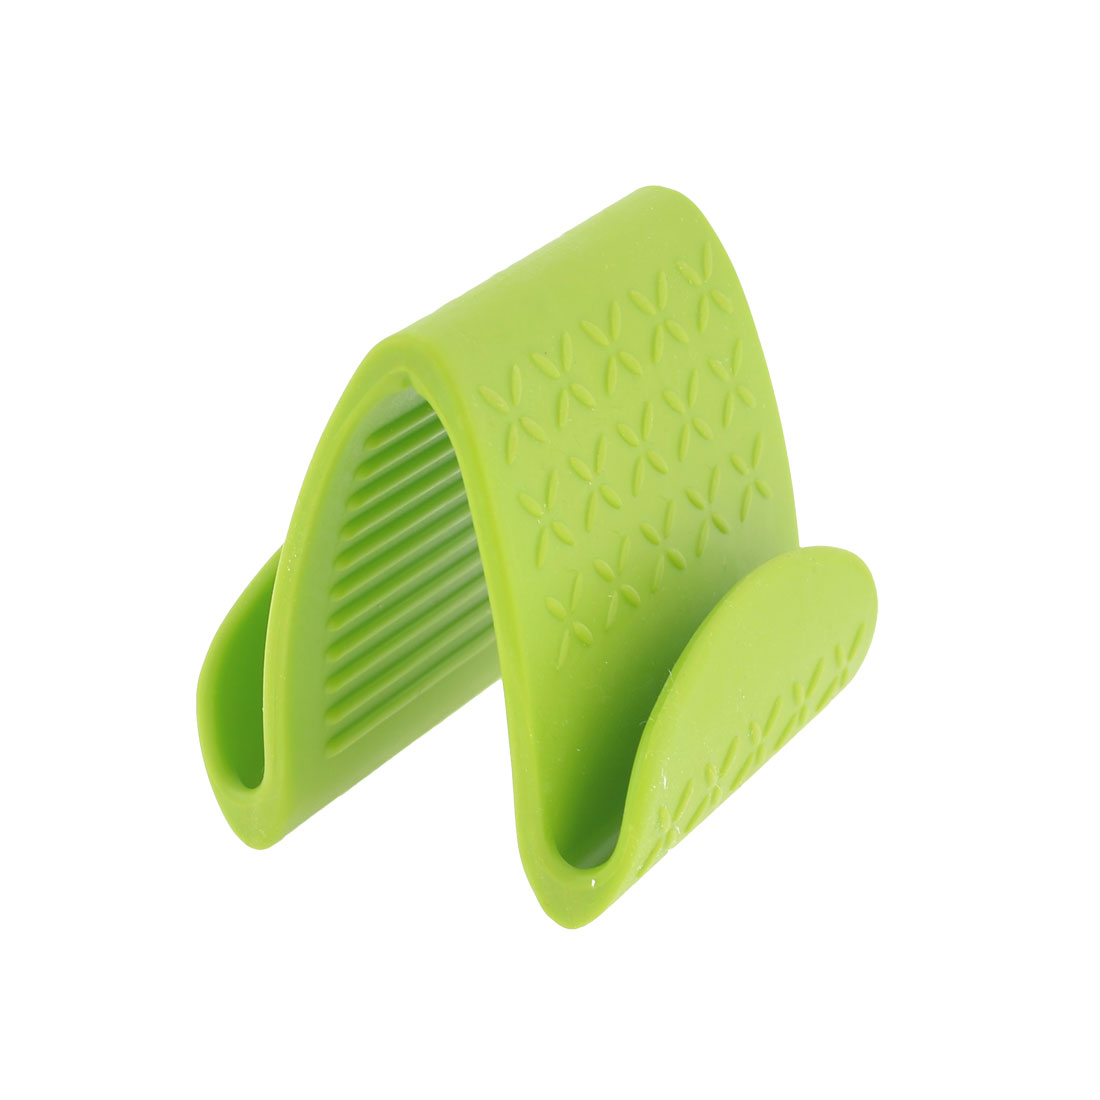 Plastic Olive Green Nonslip Heat Insulator Clip for Microwave Oven